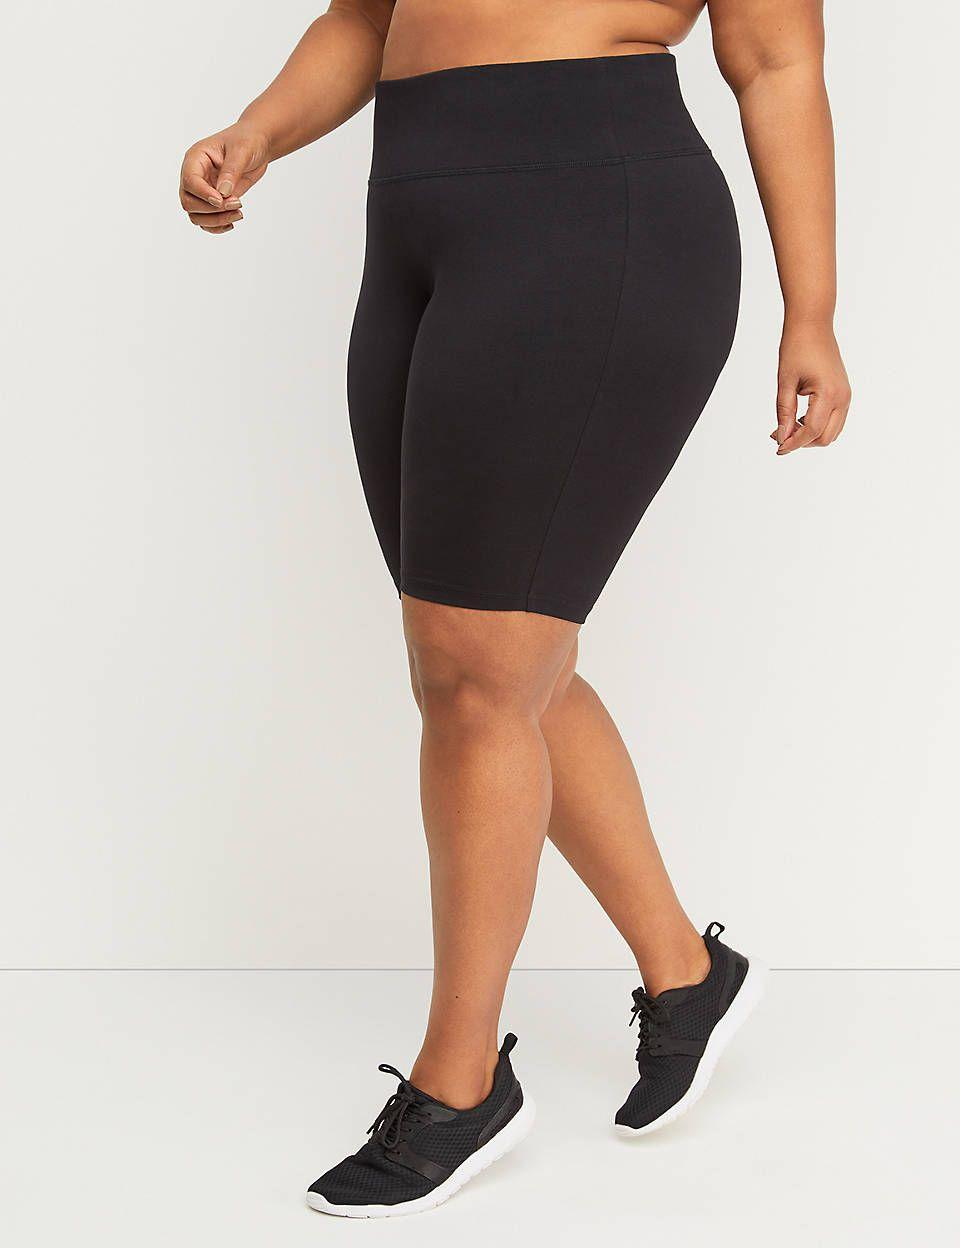 """<p><strong>Lane Bryant</strong></p><p>lanebryant.com</p><p><strong>$24.95</strong></p><p><a href=""""https://go.redirectingat.com?id=74968X1596630&url=https%3A%2F%2Fwww.lanebryant.com%2Flivi-bike-short%2Fprd-243262&sref=https%3A%2F%2Fwww.prevention.com%2Ffitness%2Fworkout-clothes-gear%2Fg34943640%2Fplus-size-workout-clothes%2F"""" rel=""""nofollow noopener"""" target=""""_blank"""" data-ylk=""""slk:Shop Now"""" class=""""link rapid-noclick-resp"""">Shop Now</a></p><p>Customers love the feel of these bike shorts, and they say the long inseam is super flattering and the waistband doesn't roll down. When you're not working out, they make for a perfect base layer under dresses.</p>"""